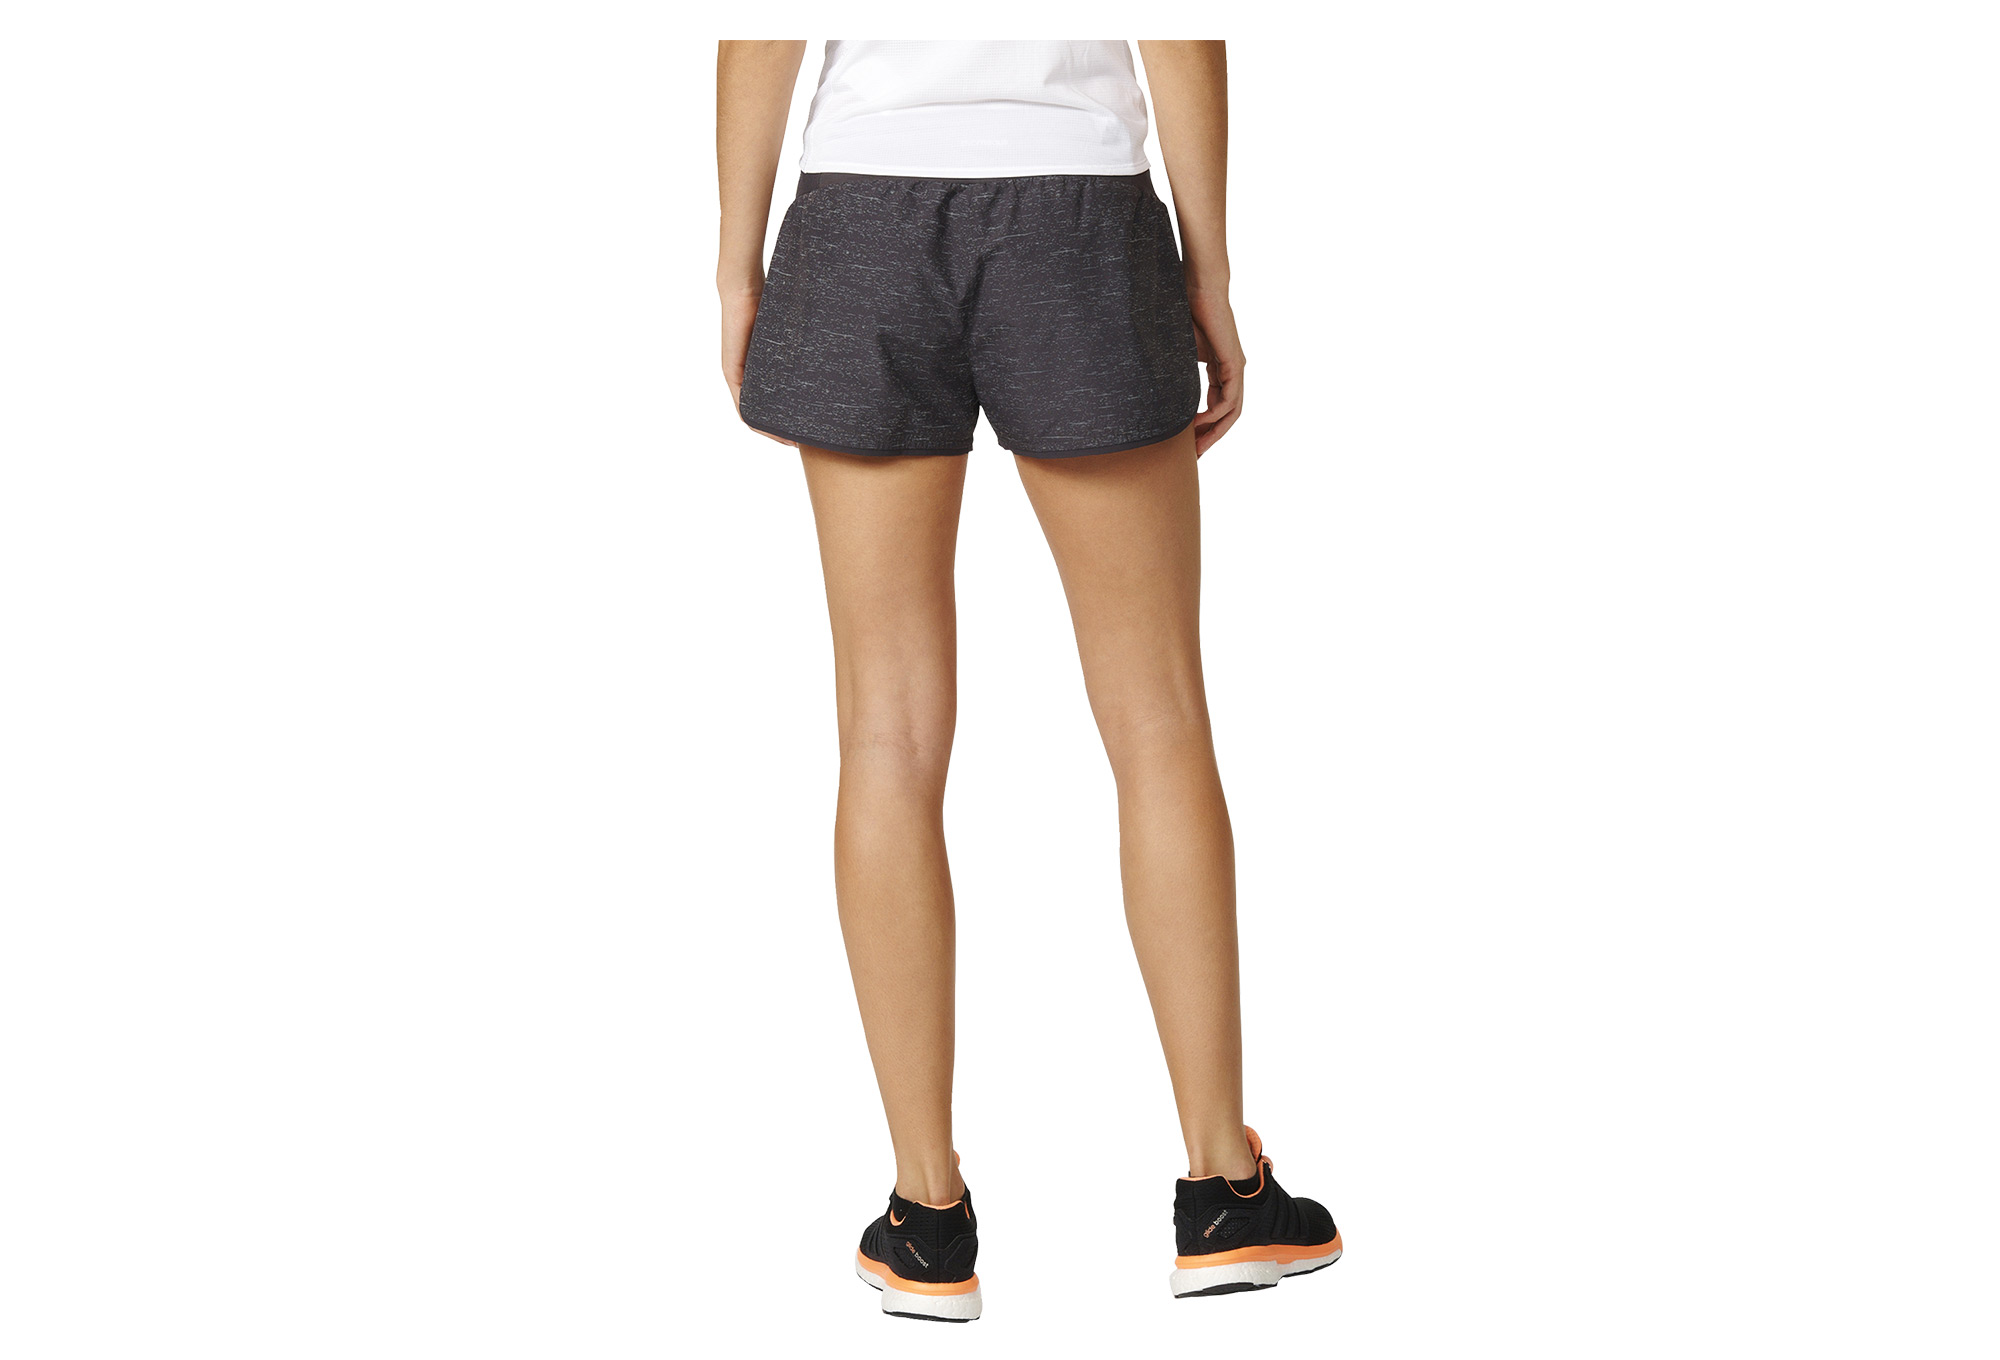 Women Sport Supernova Glide Adidas Shorts Running Grey qvO7TCB